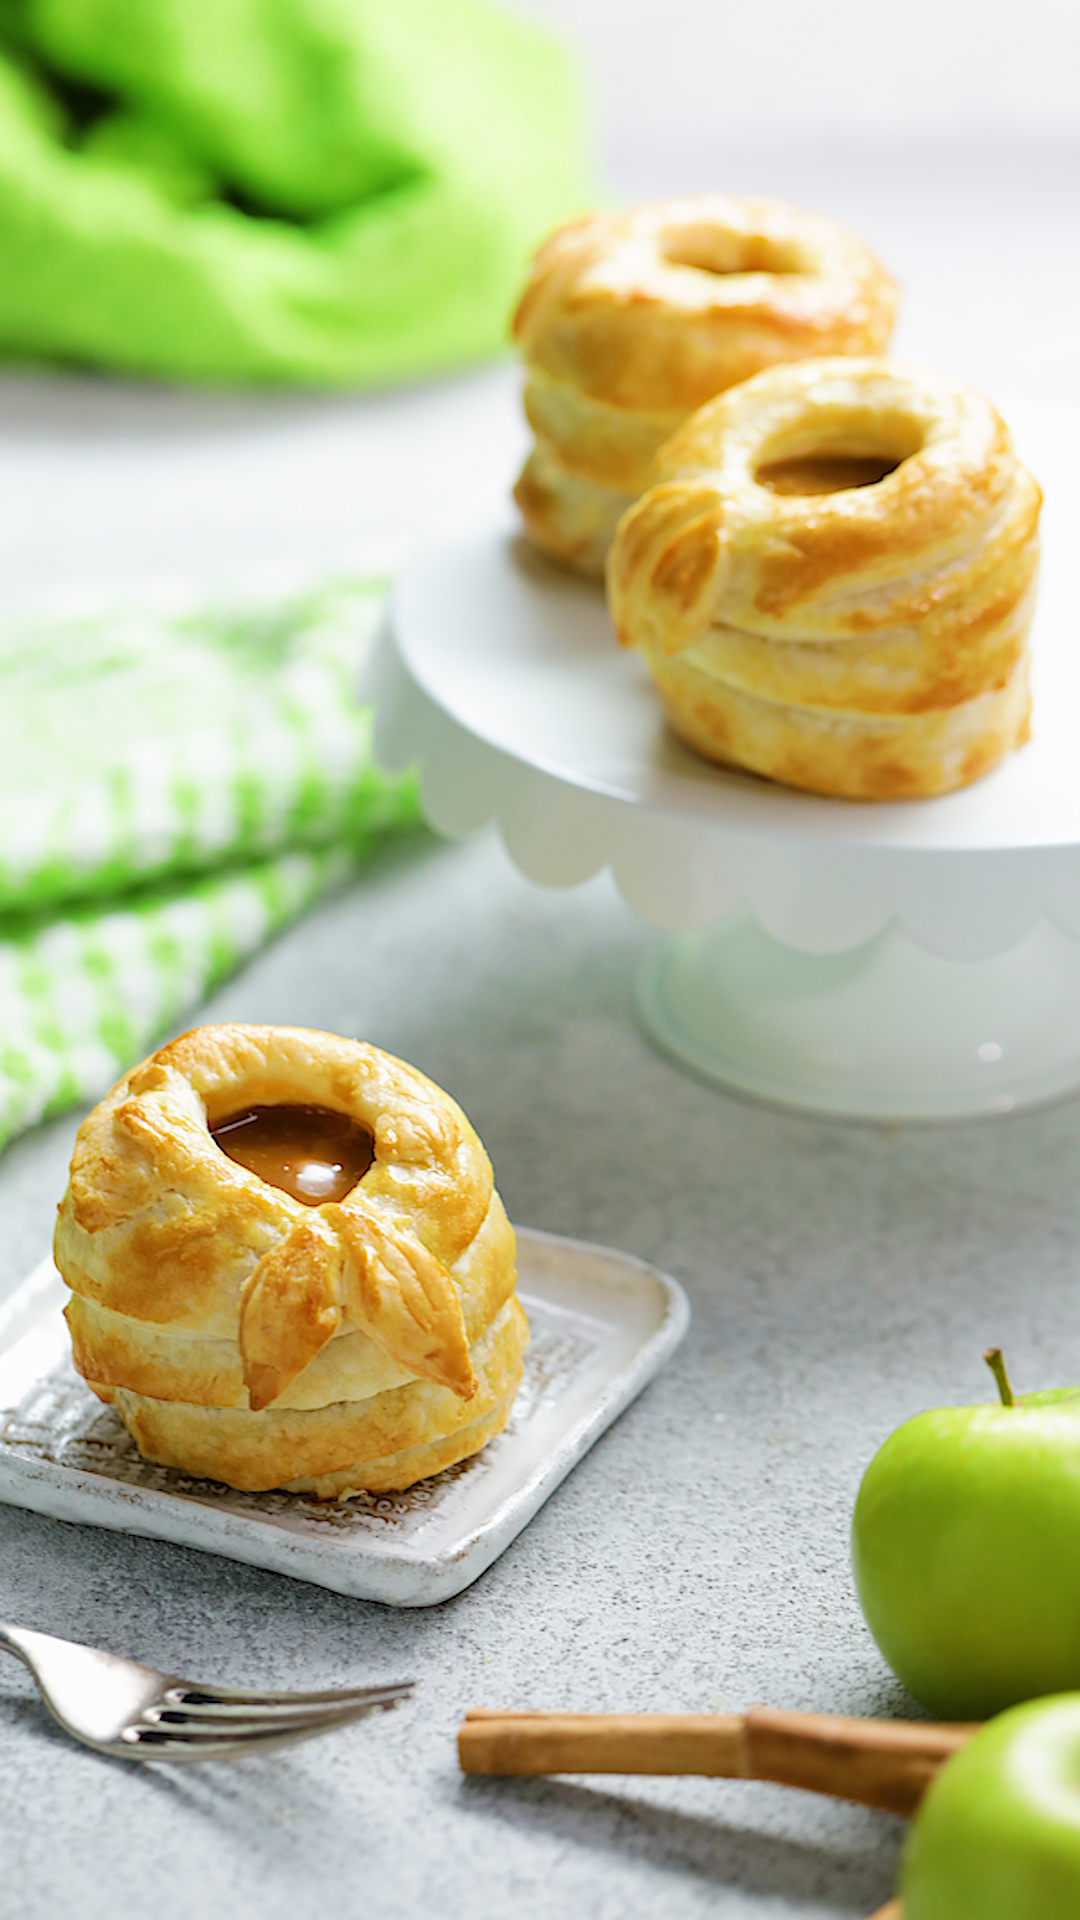 Puff Pastry Wrapped Apples